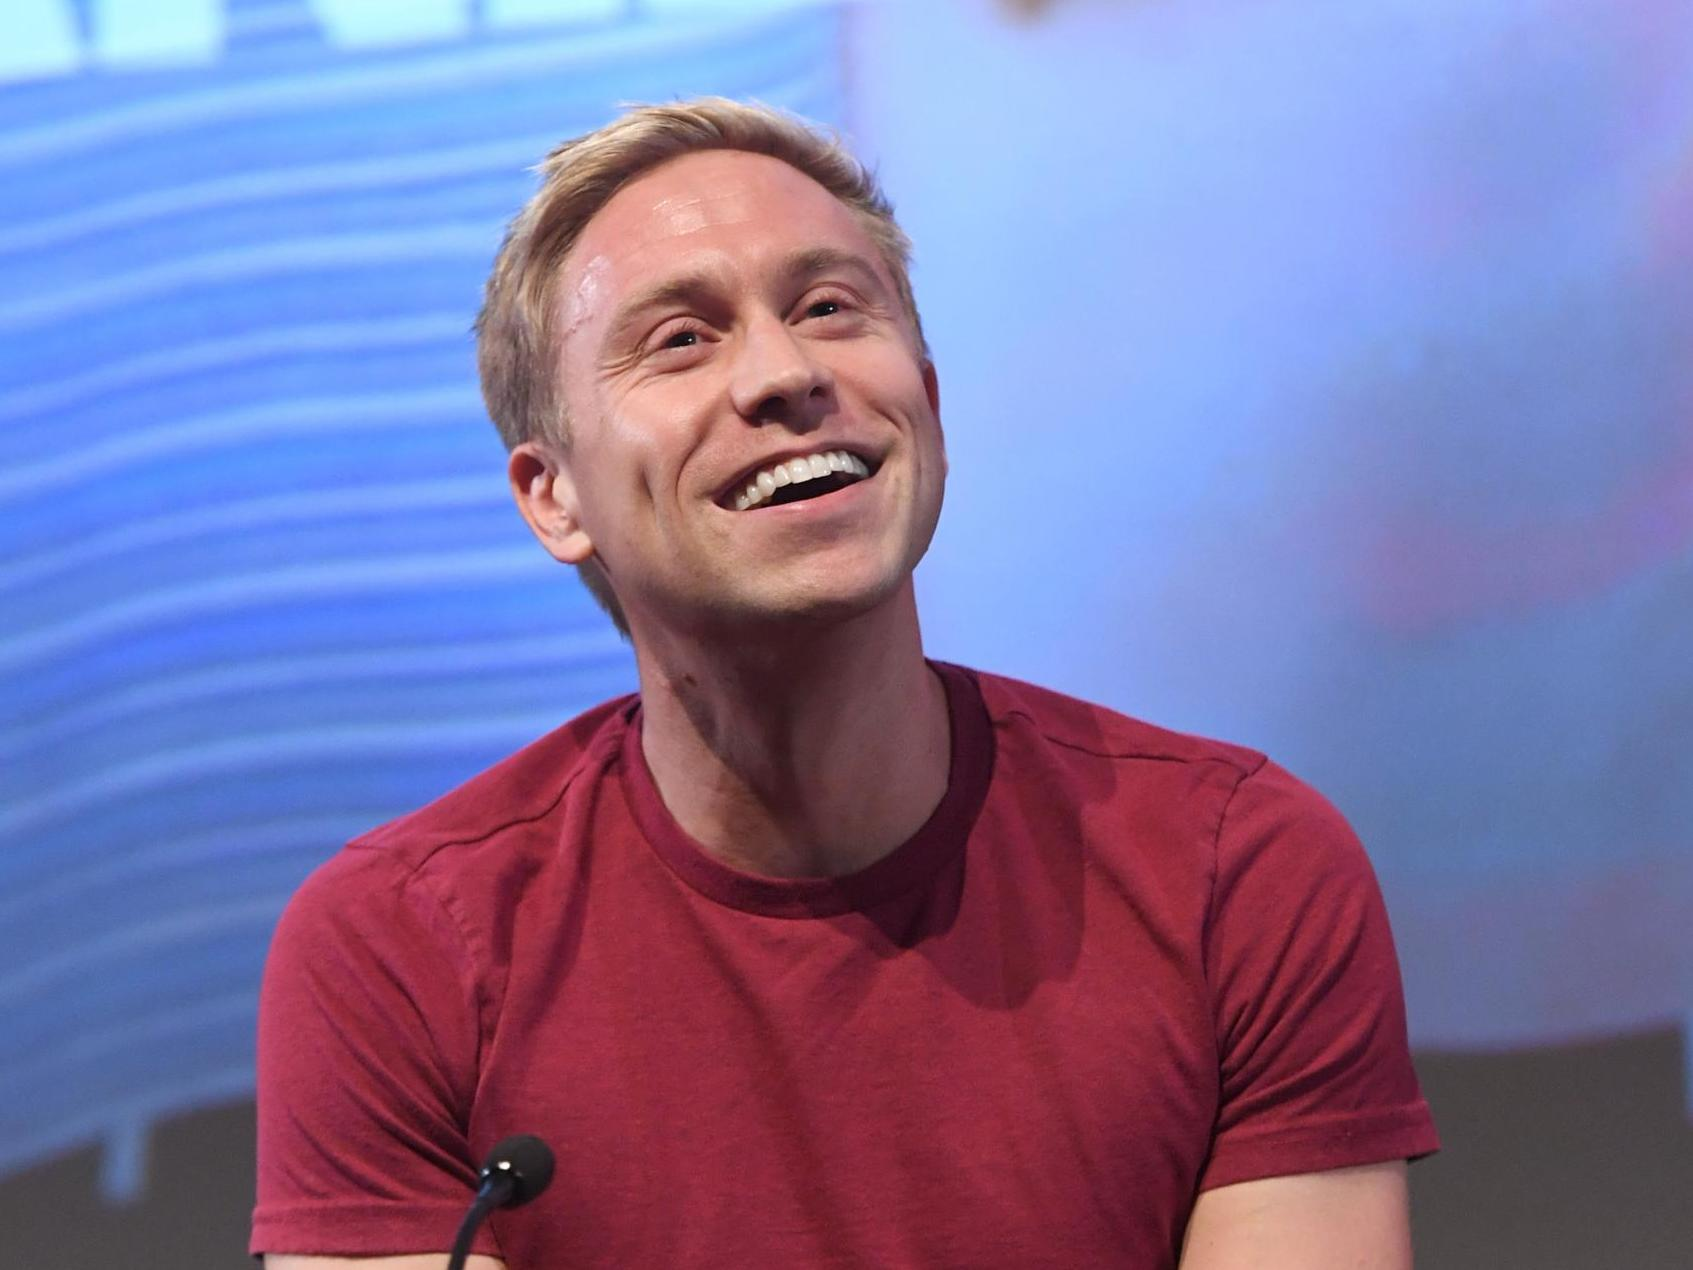 Russell Howard's phone tantrum was pointless when live comedy is struggling